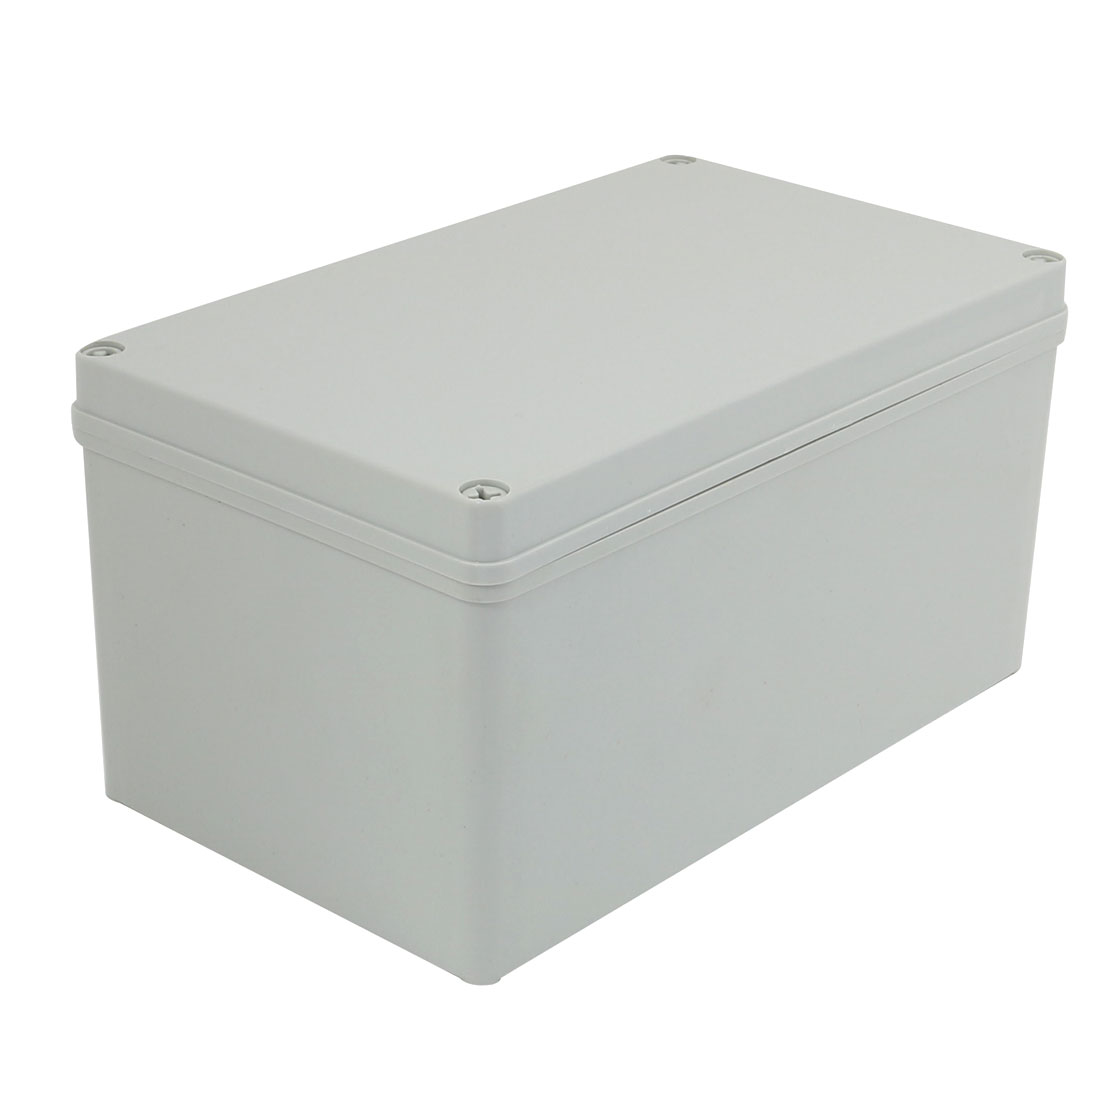 250mmx150mmx130mm Electronic ABS Plastic DIY Junction Box Enclosure Case Gray